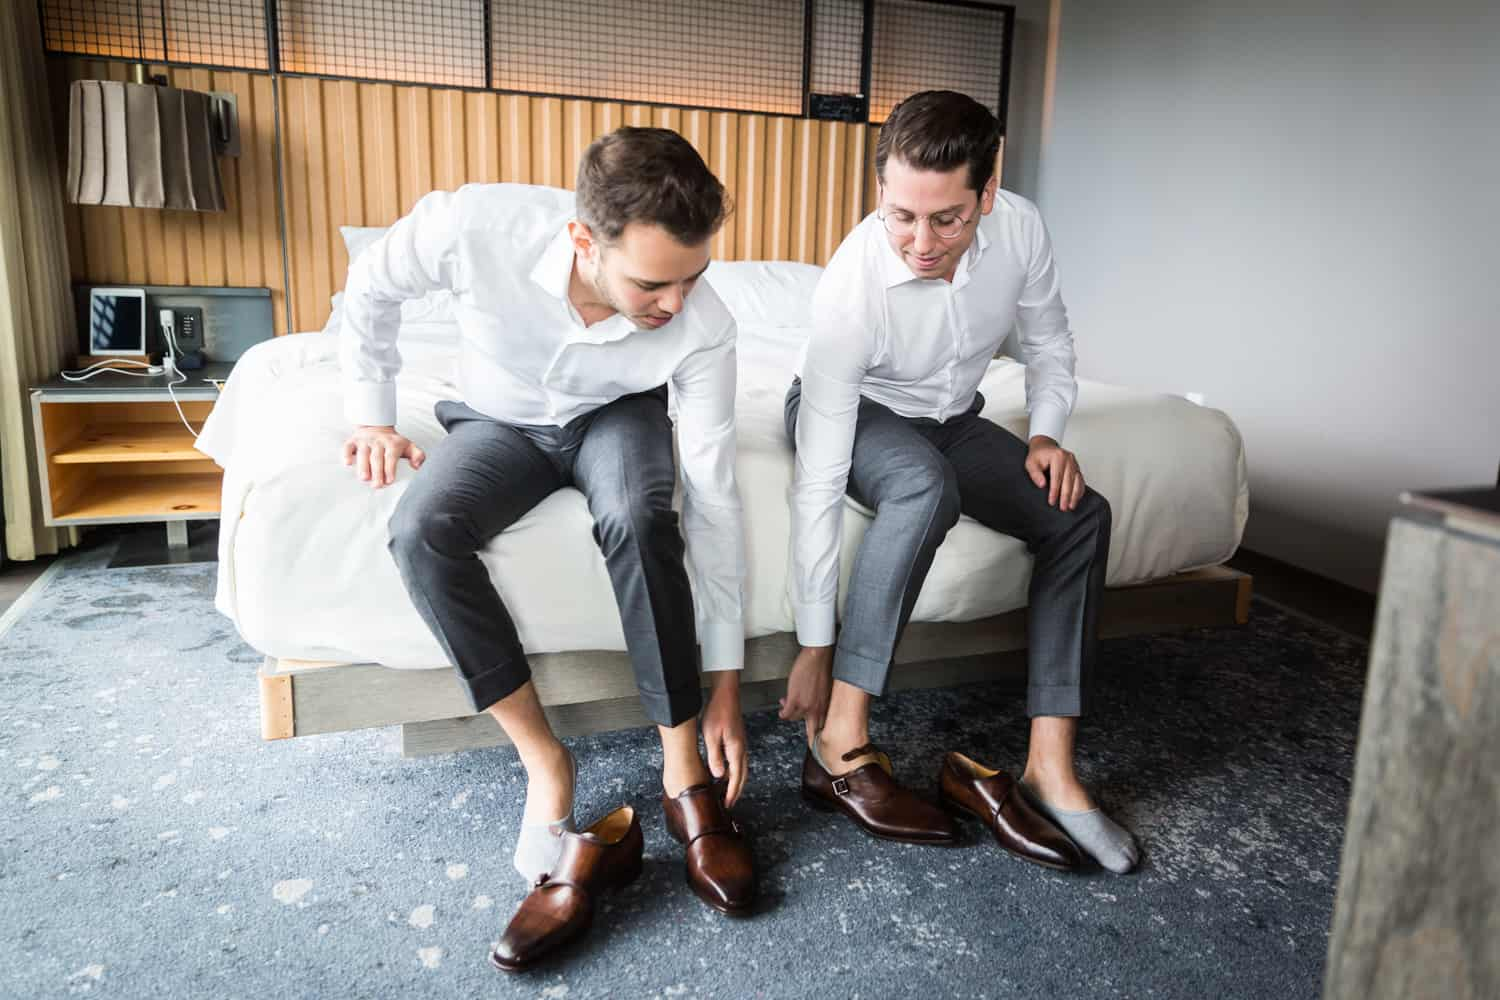 Greenpoint Loft wedding photos of two grooms putting on shoes while sitting on bed